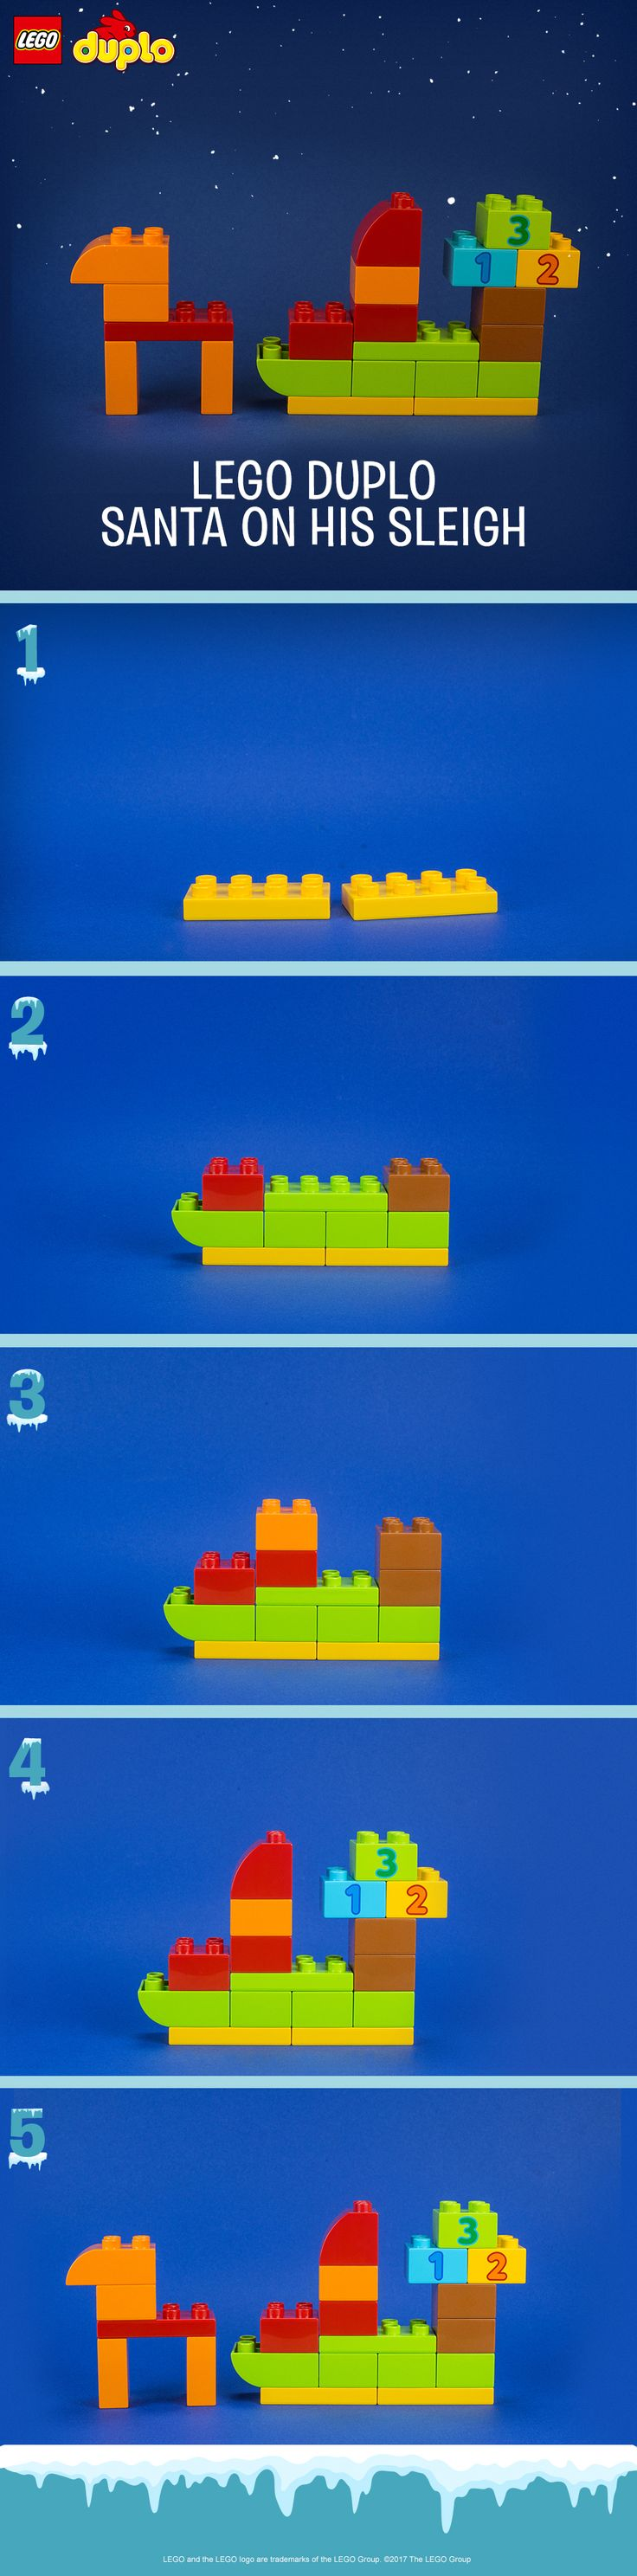 This seasonal LEGO DUPLO build is a great no-prep activity for your toddler during the holidays. Use colorful bricks to create this fun festive scene together, then use it as an opportunity to explore roleplay. Build Santa and his reindeer on his sleigh full of presents, ready to deliver them to children around the world. You can make this and many more holiday builds with the LEGO DUPLO All-in-One-Box-of-Fun. Click to buy.